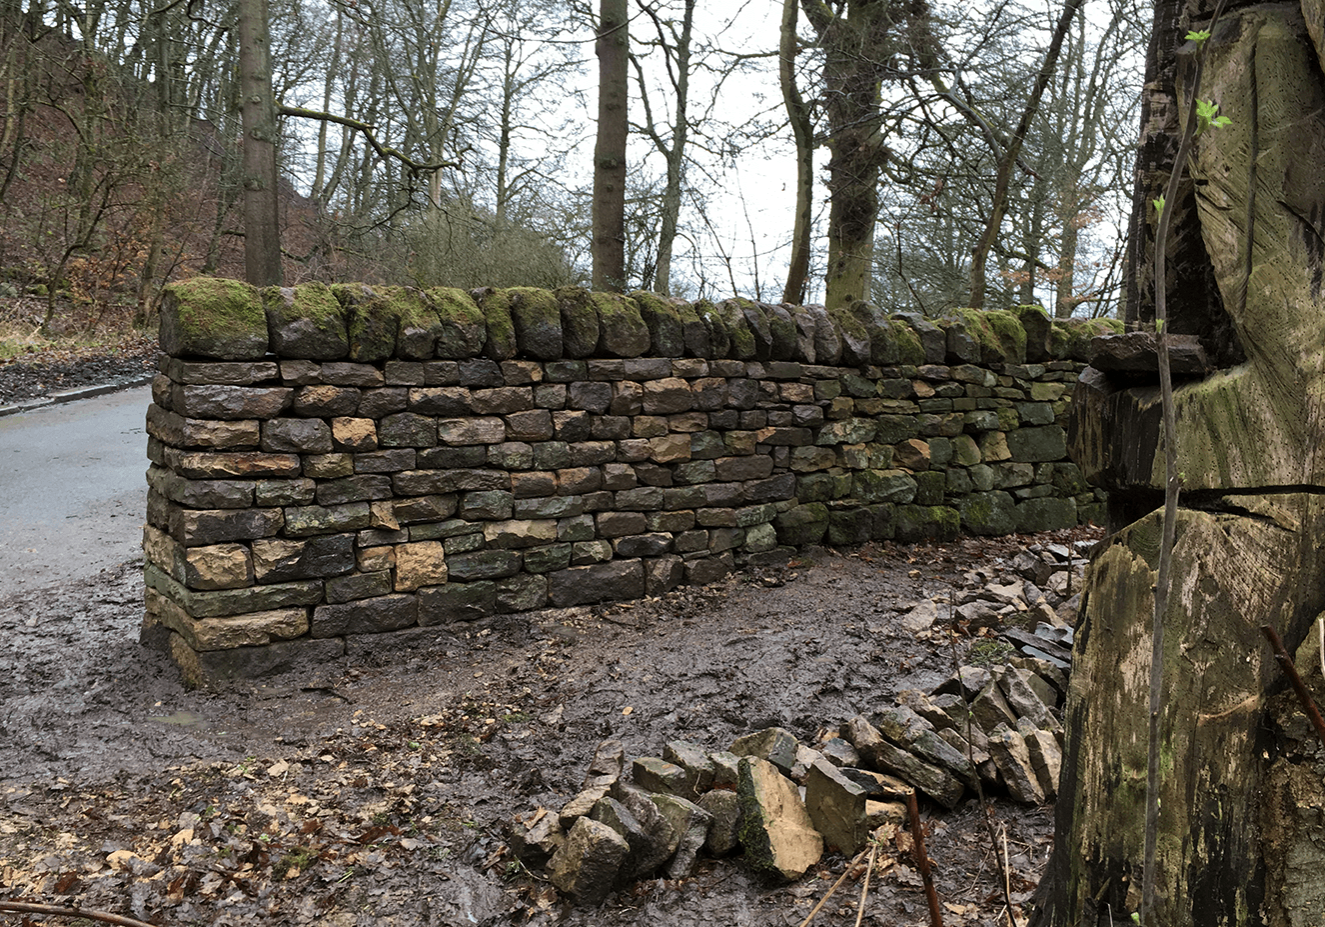 Dry stone walling in Otley